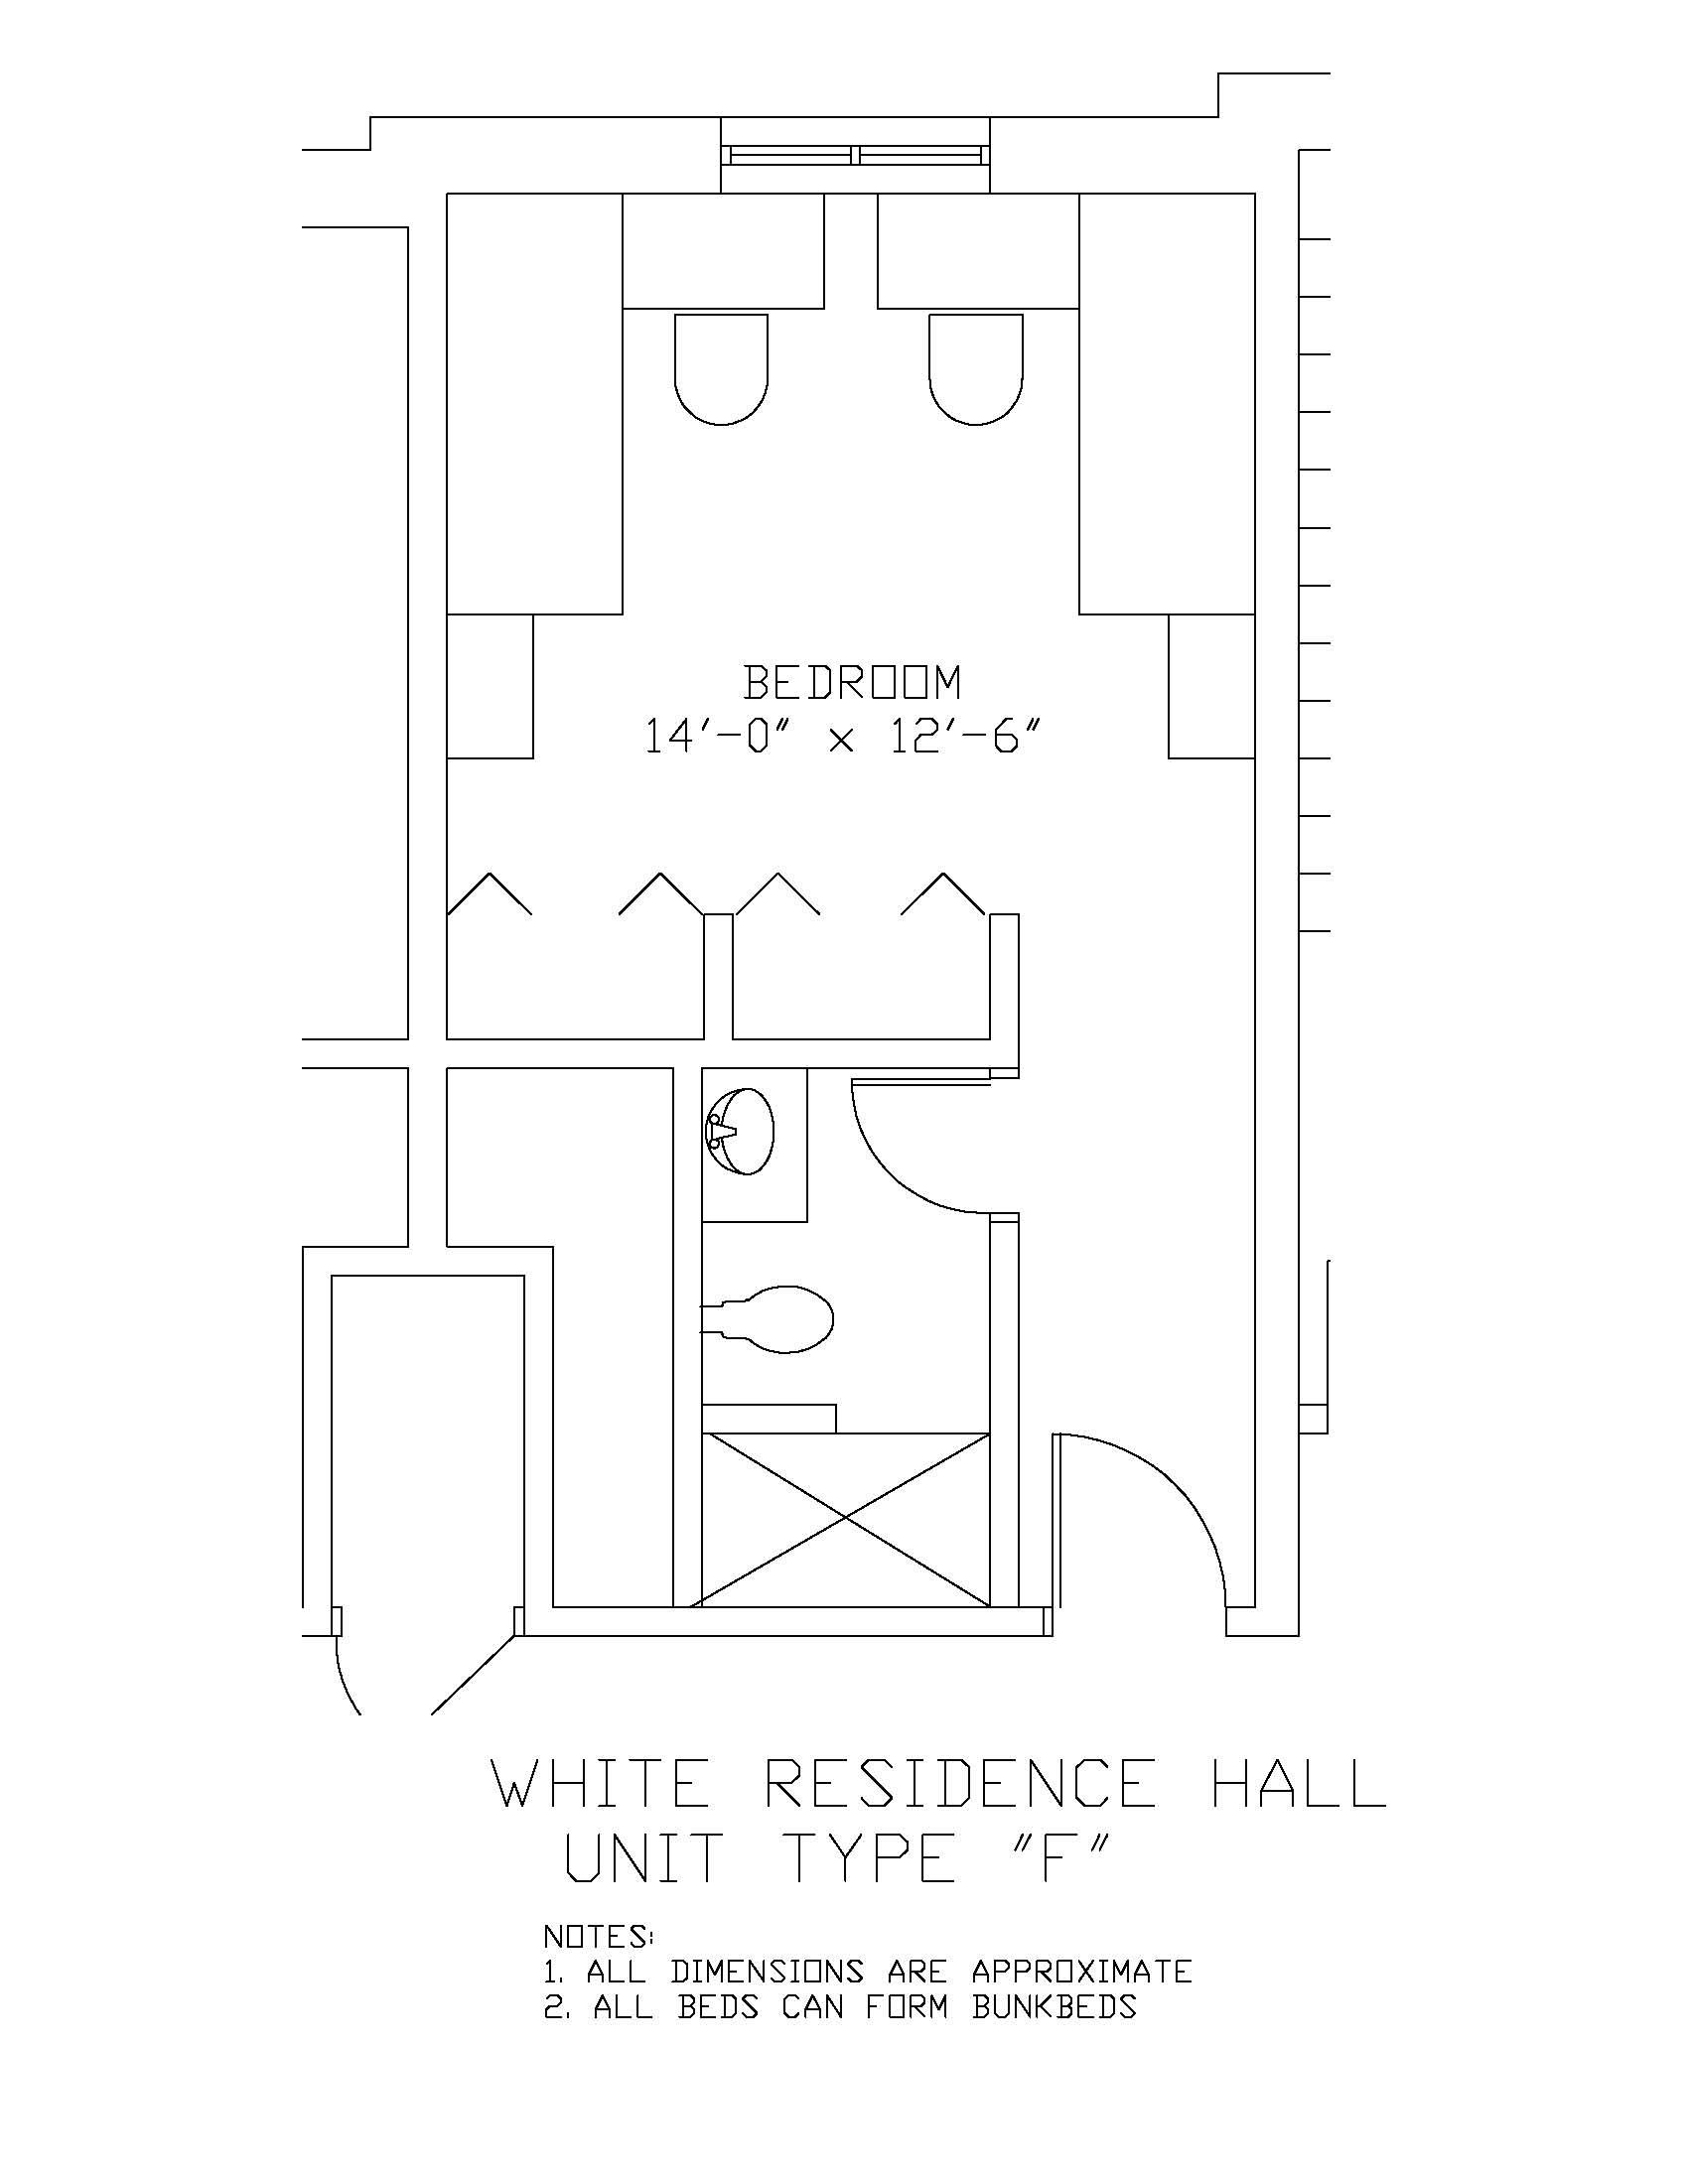 James S. White Hall: Type F